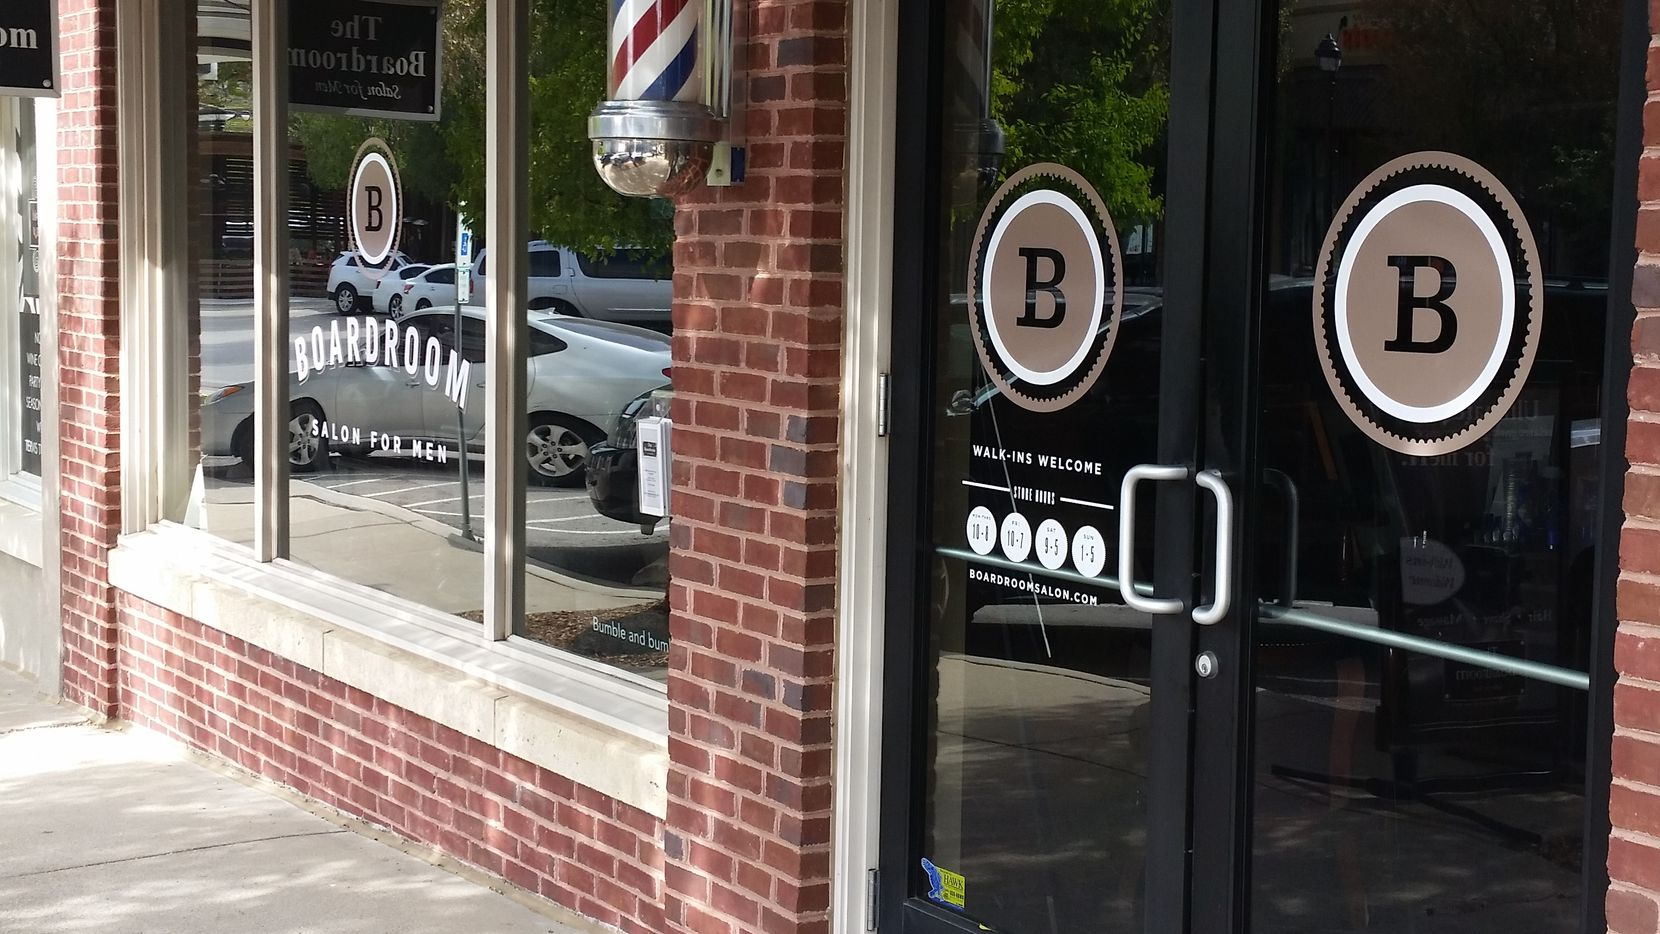 Boardroom Salon for Men has been in Southlake Town Square since 2004.